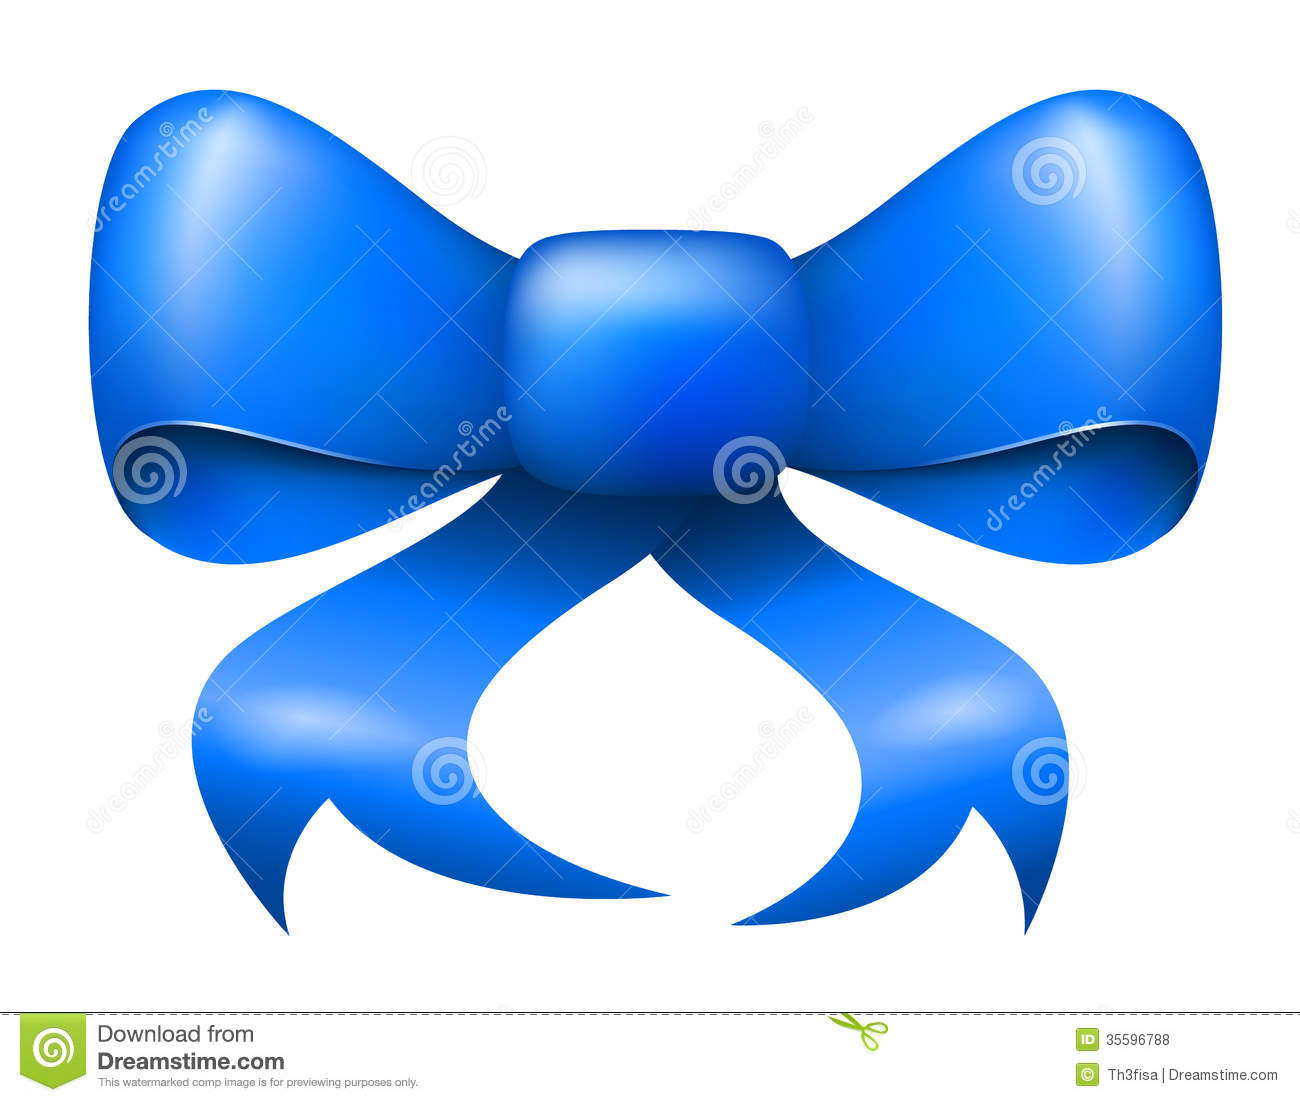 ... Blue Ribbon Bow Clipart Vector Blue -... Blue Ribbon Bow Clipart Vector Blue Christmas Ribbon Clipart ...-13